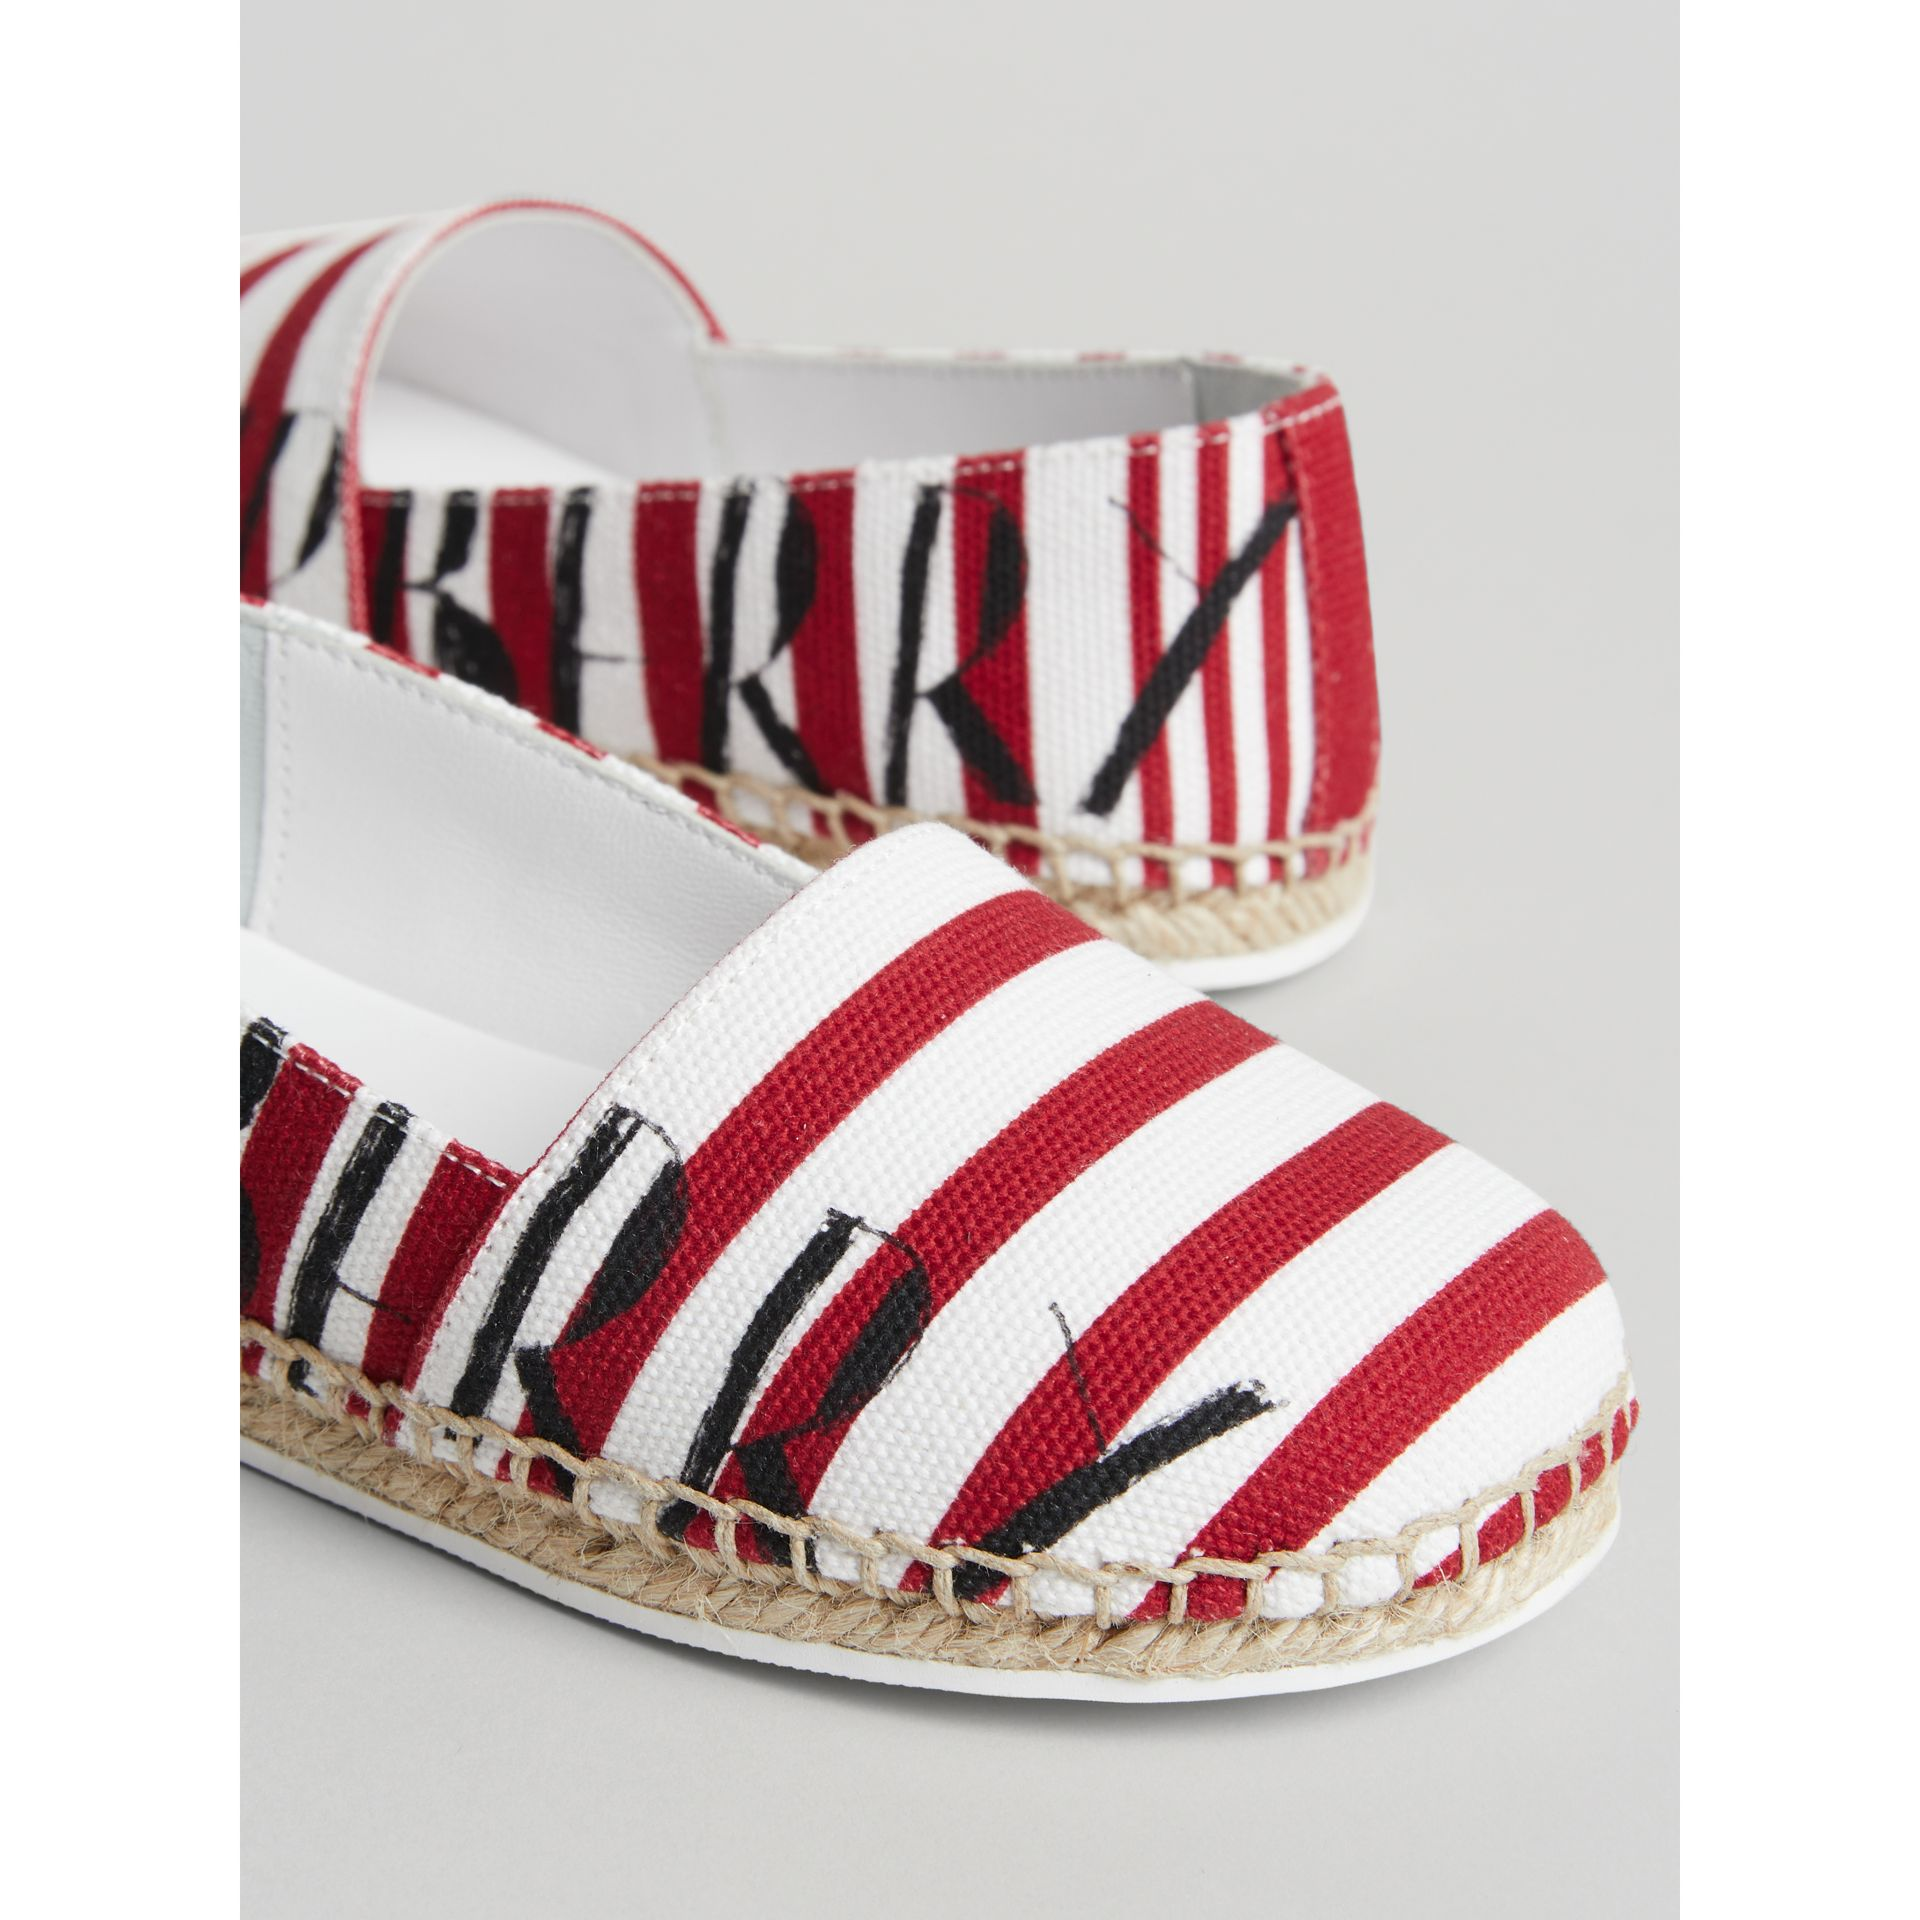 SW1 Print Striped Cotton Espadrilles in Bright Red | Burberry United States - gallery image 1